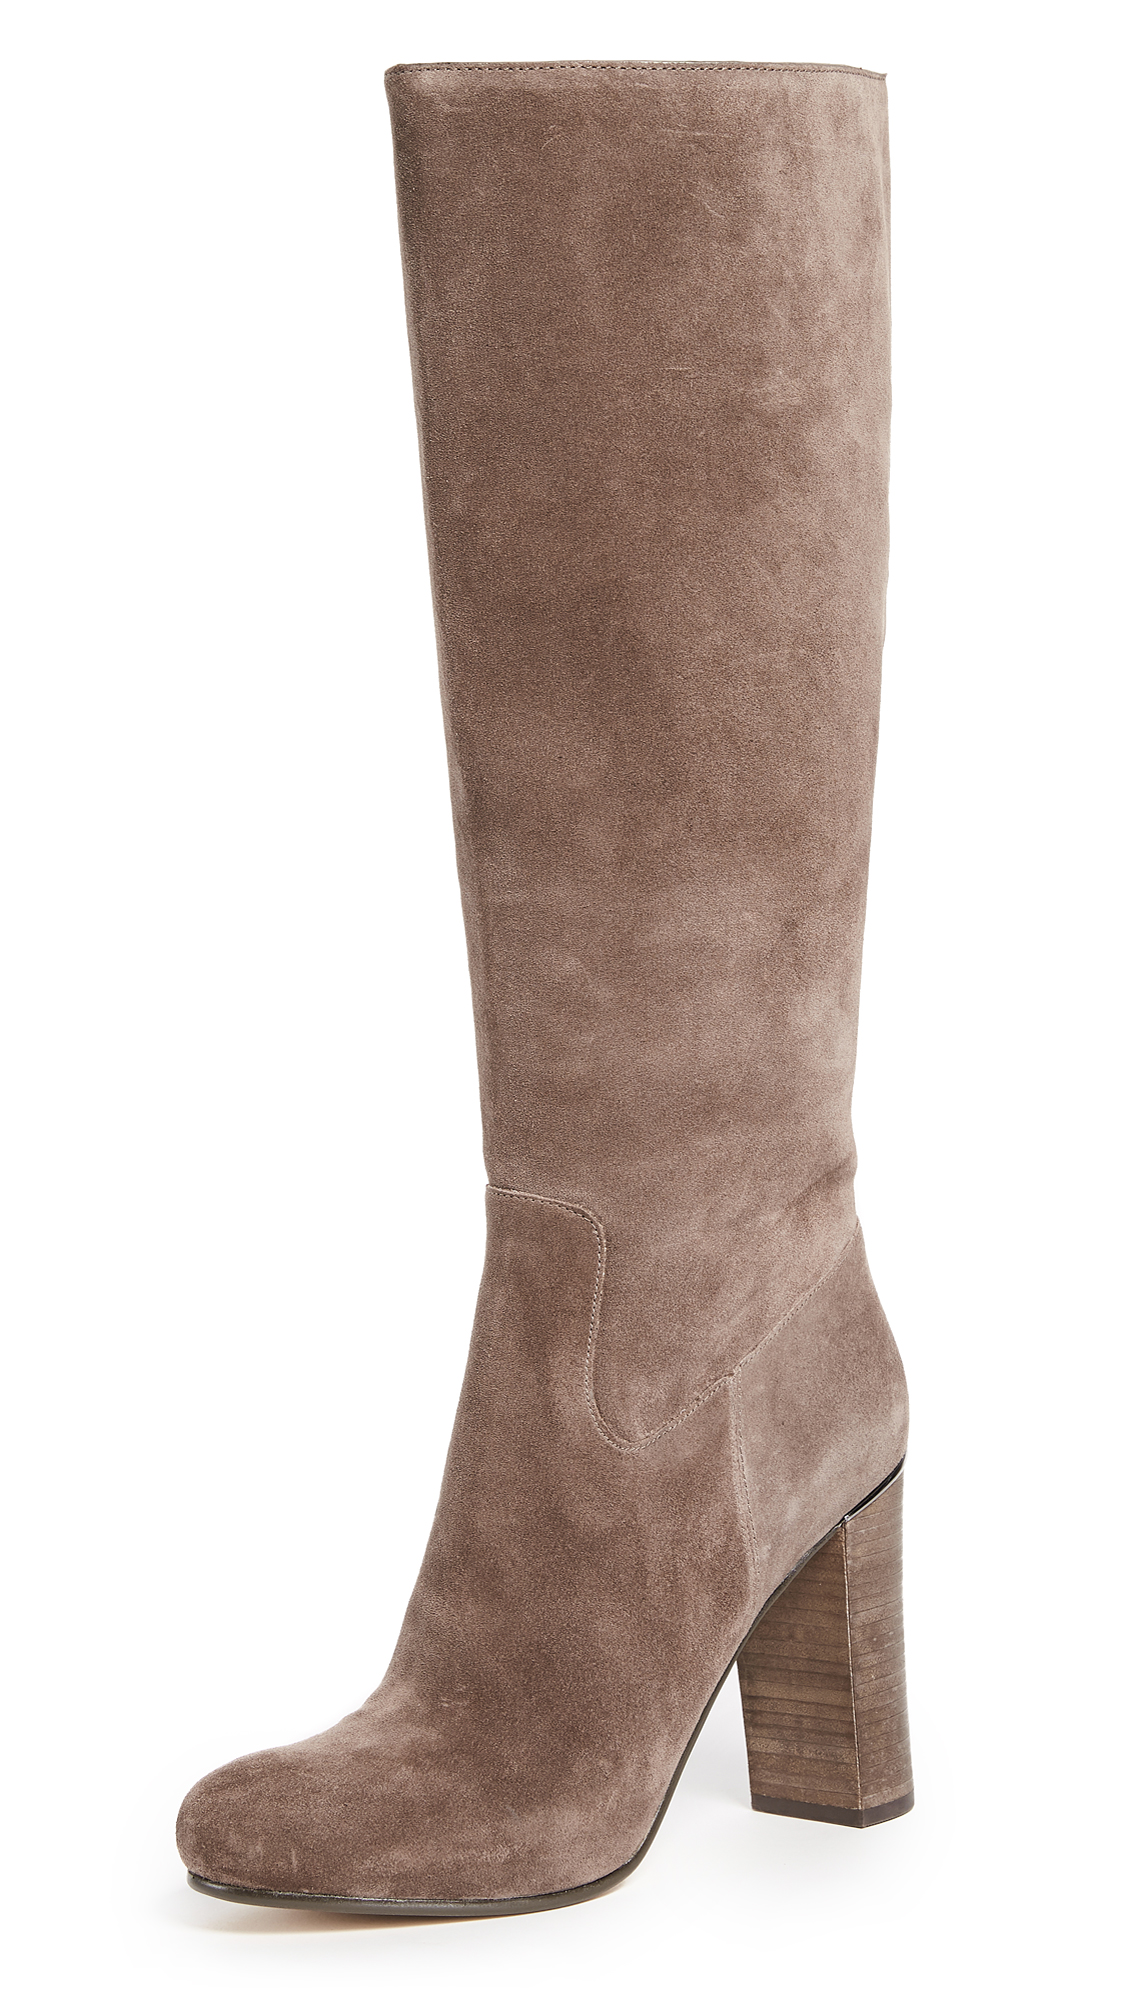 MICHAEL Michael Kors Janice Tall Boots - Taupe